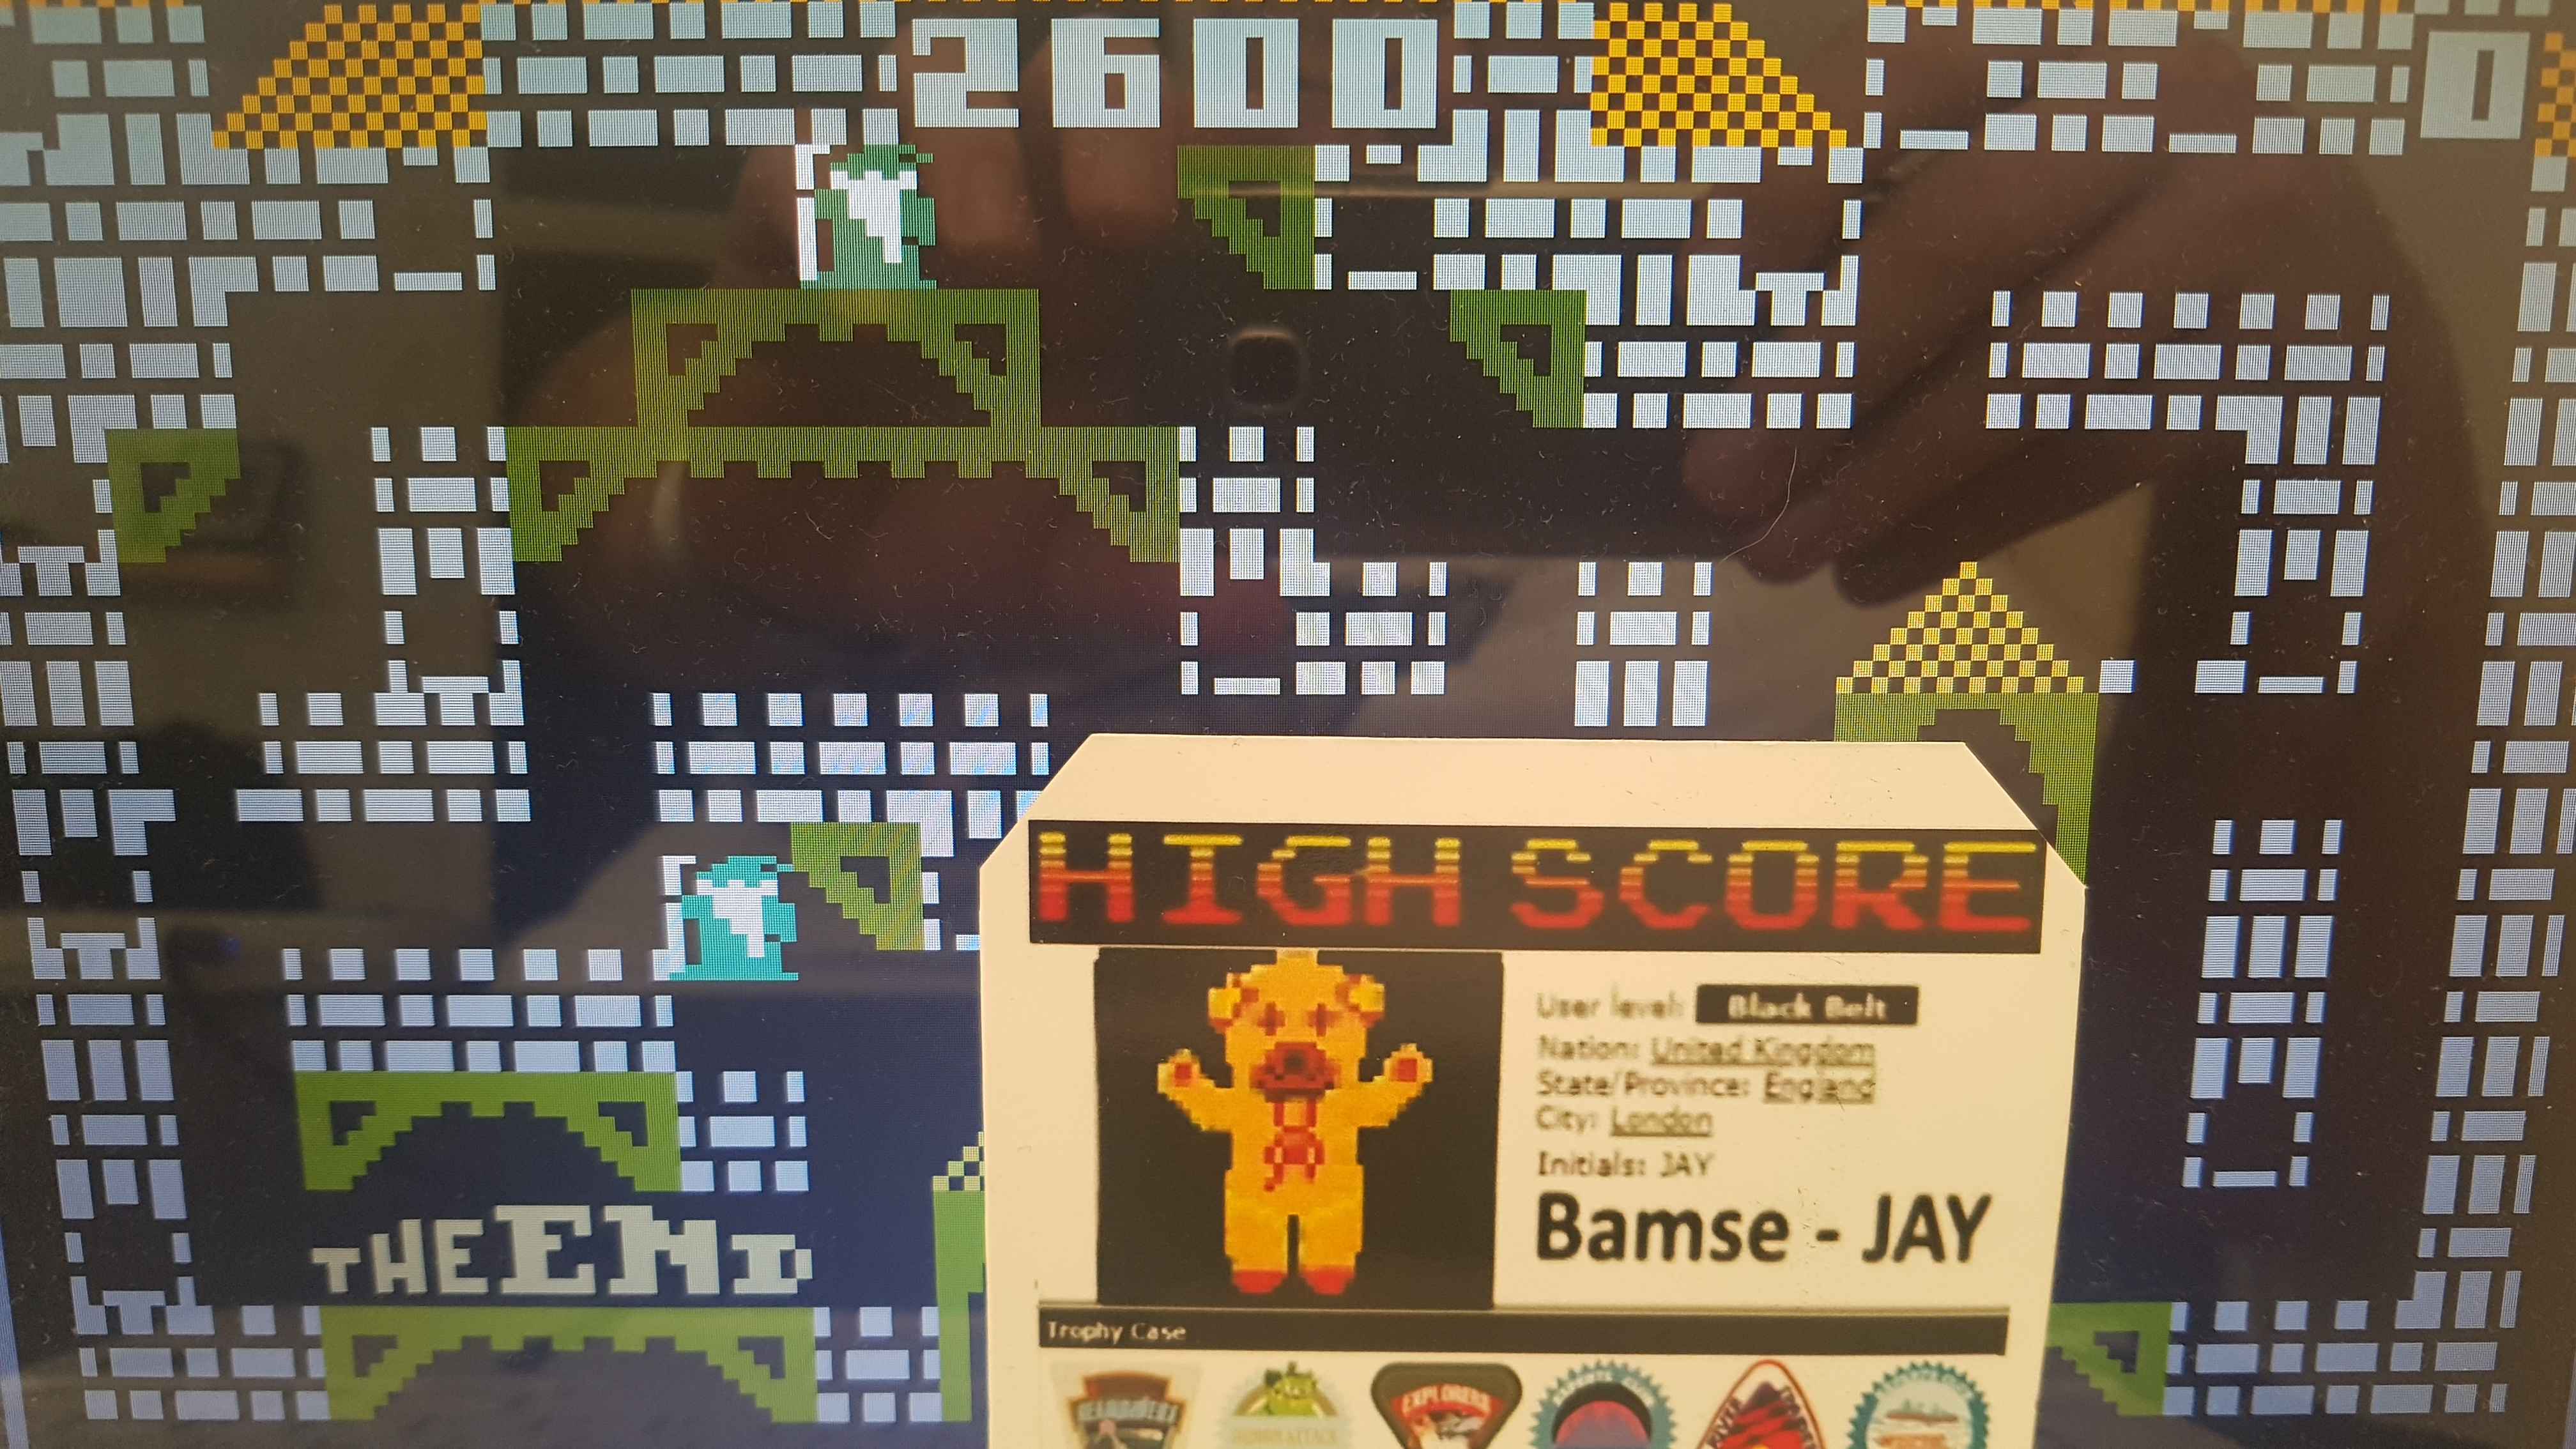 Bamse: Mystic Castle [Button 4: Knight] (Intellivision Emulated) 2,600 points on 2019-10-30 14:10:19